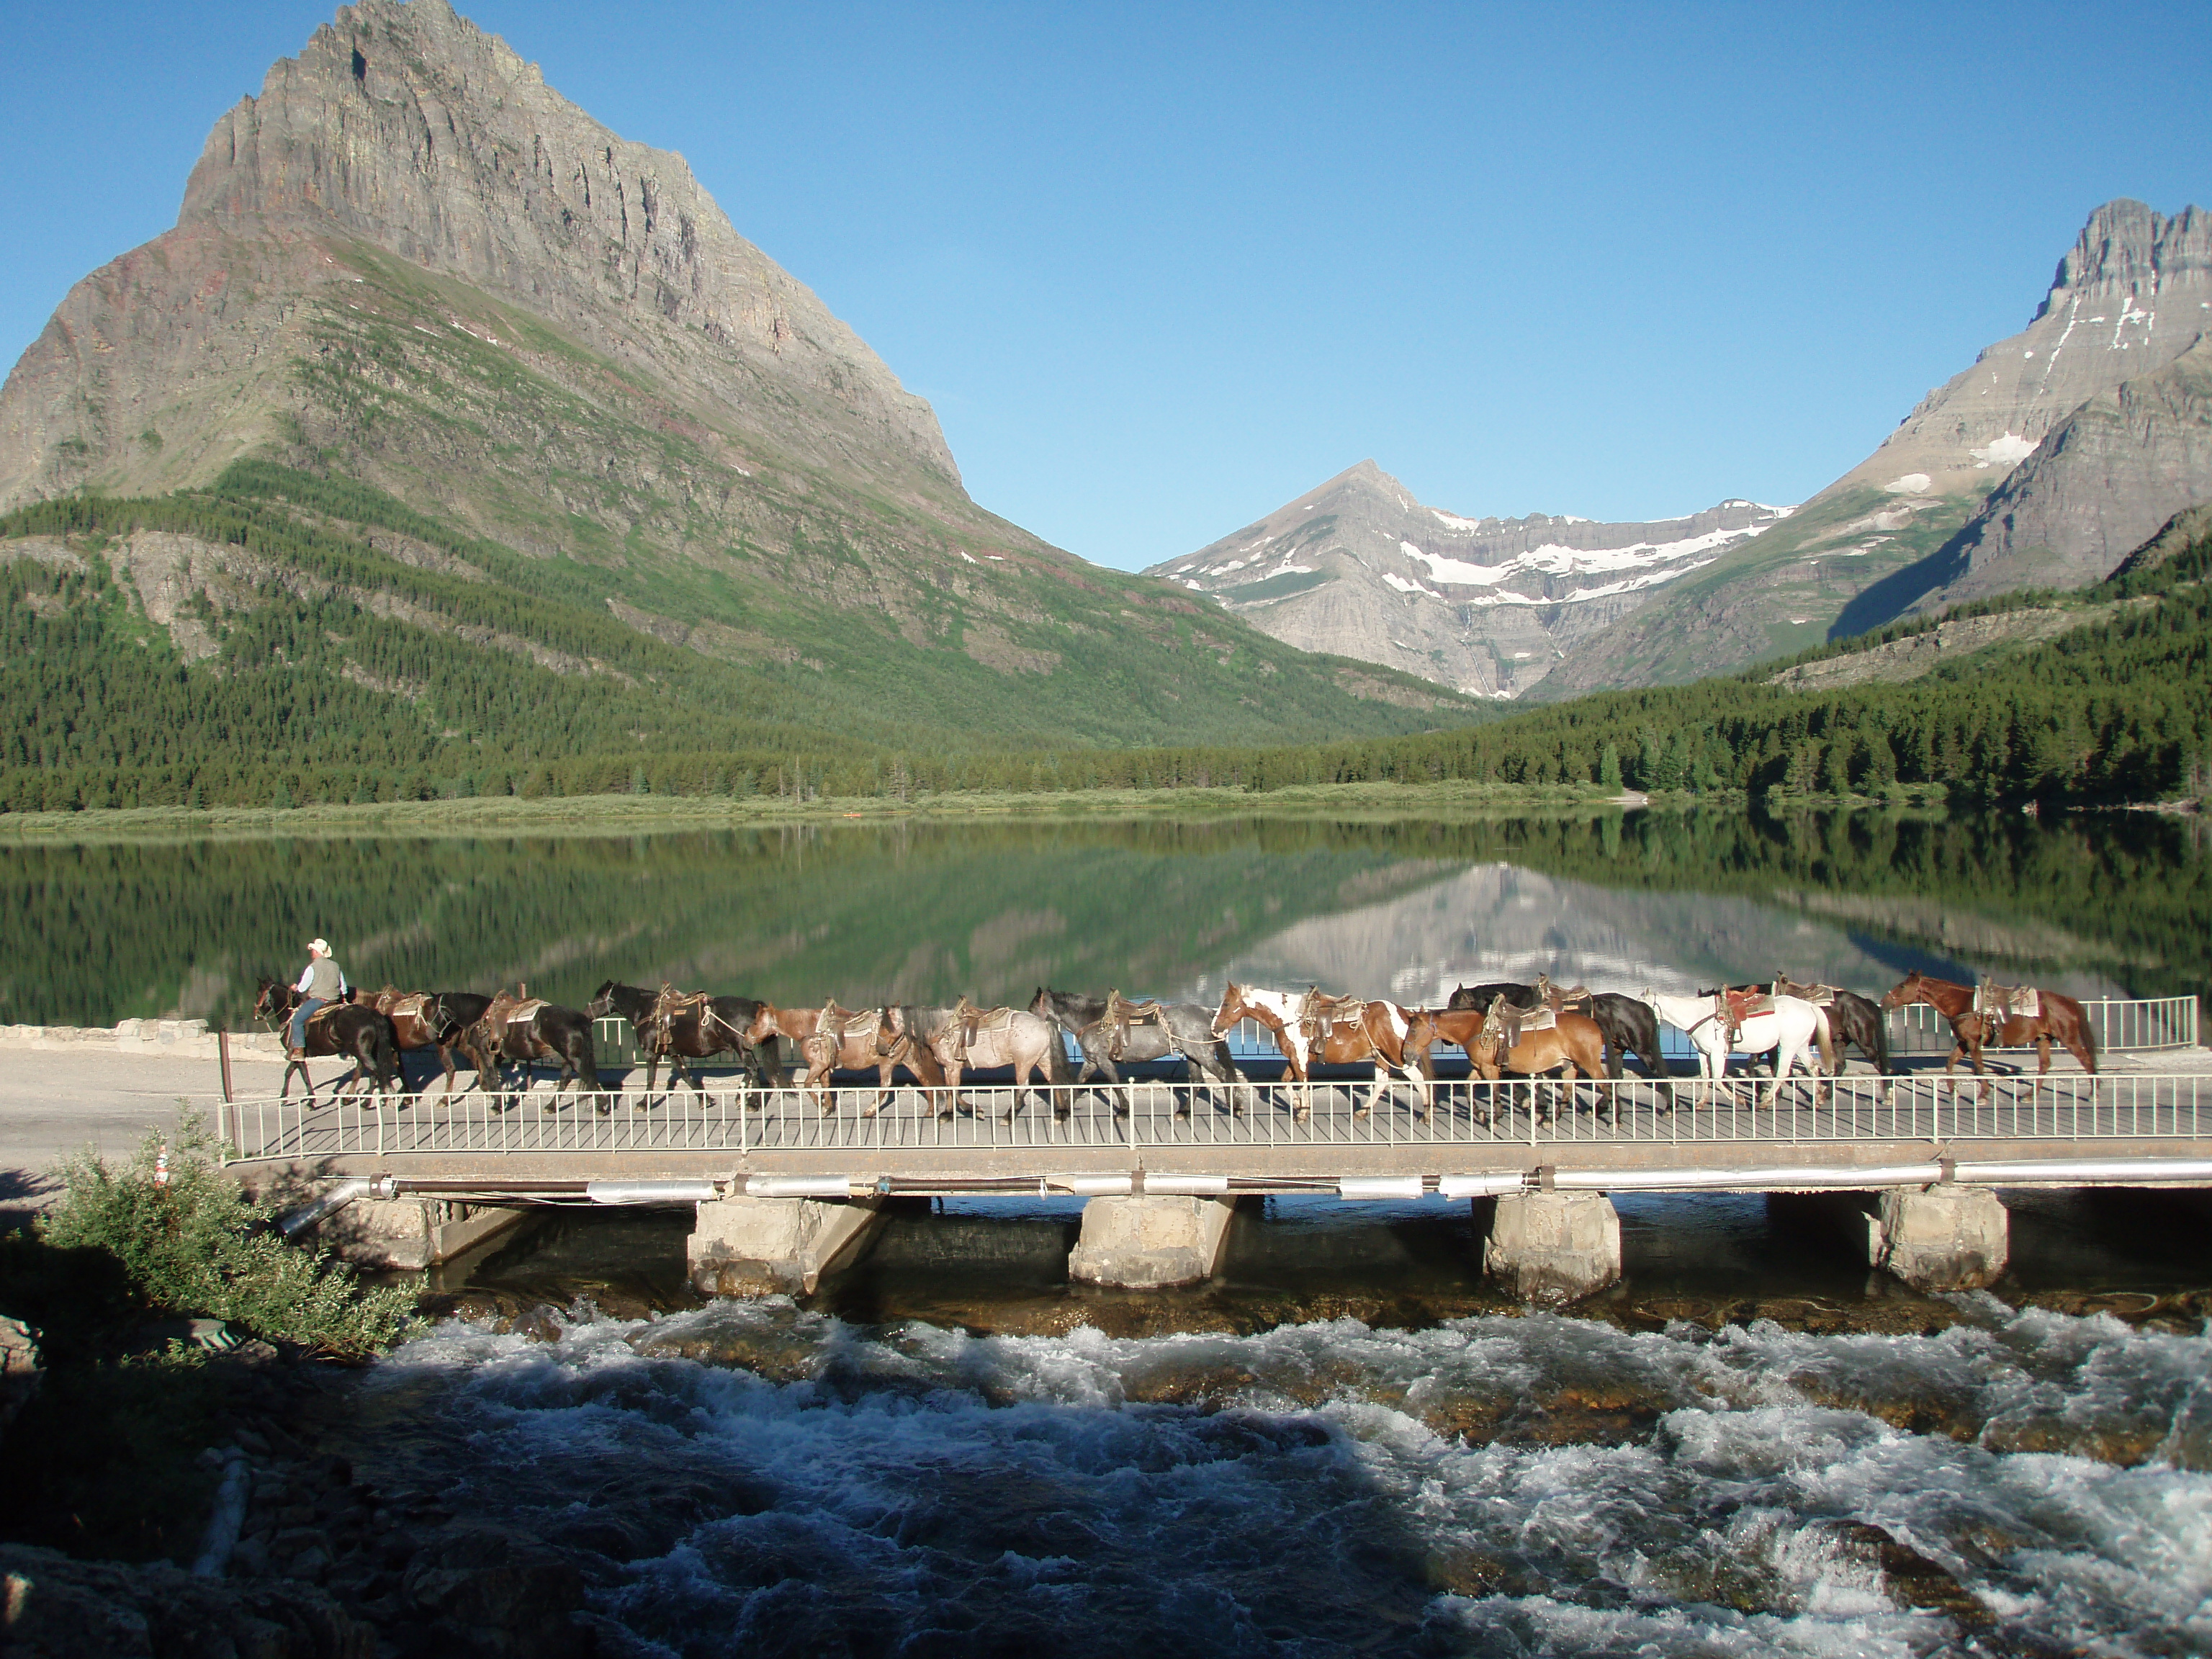 horseback-riding-in-the-rocky-mountains